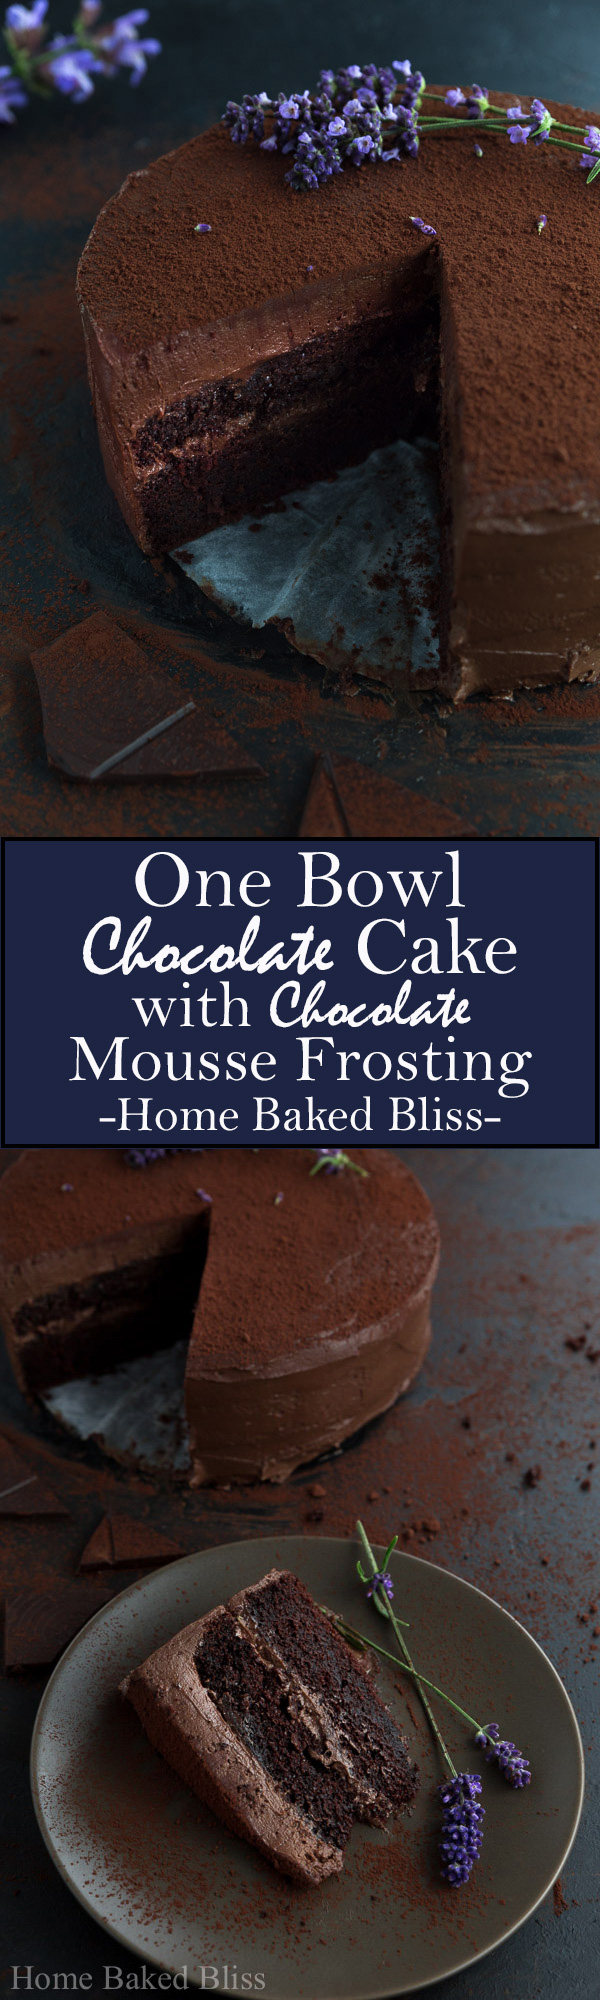 A decadent and flavourful chocolate cocoa cake with chocolate mousse frosting. #chocolate #cake #chocolatecake #dessert | homebakedbliss.com